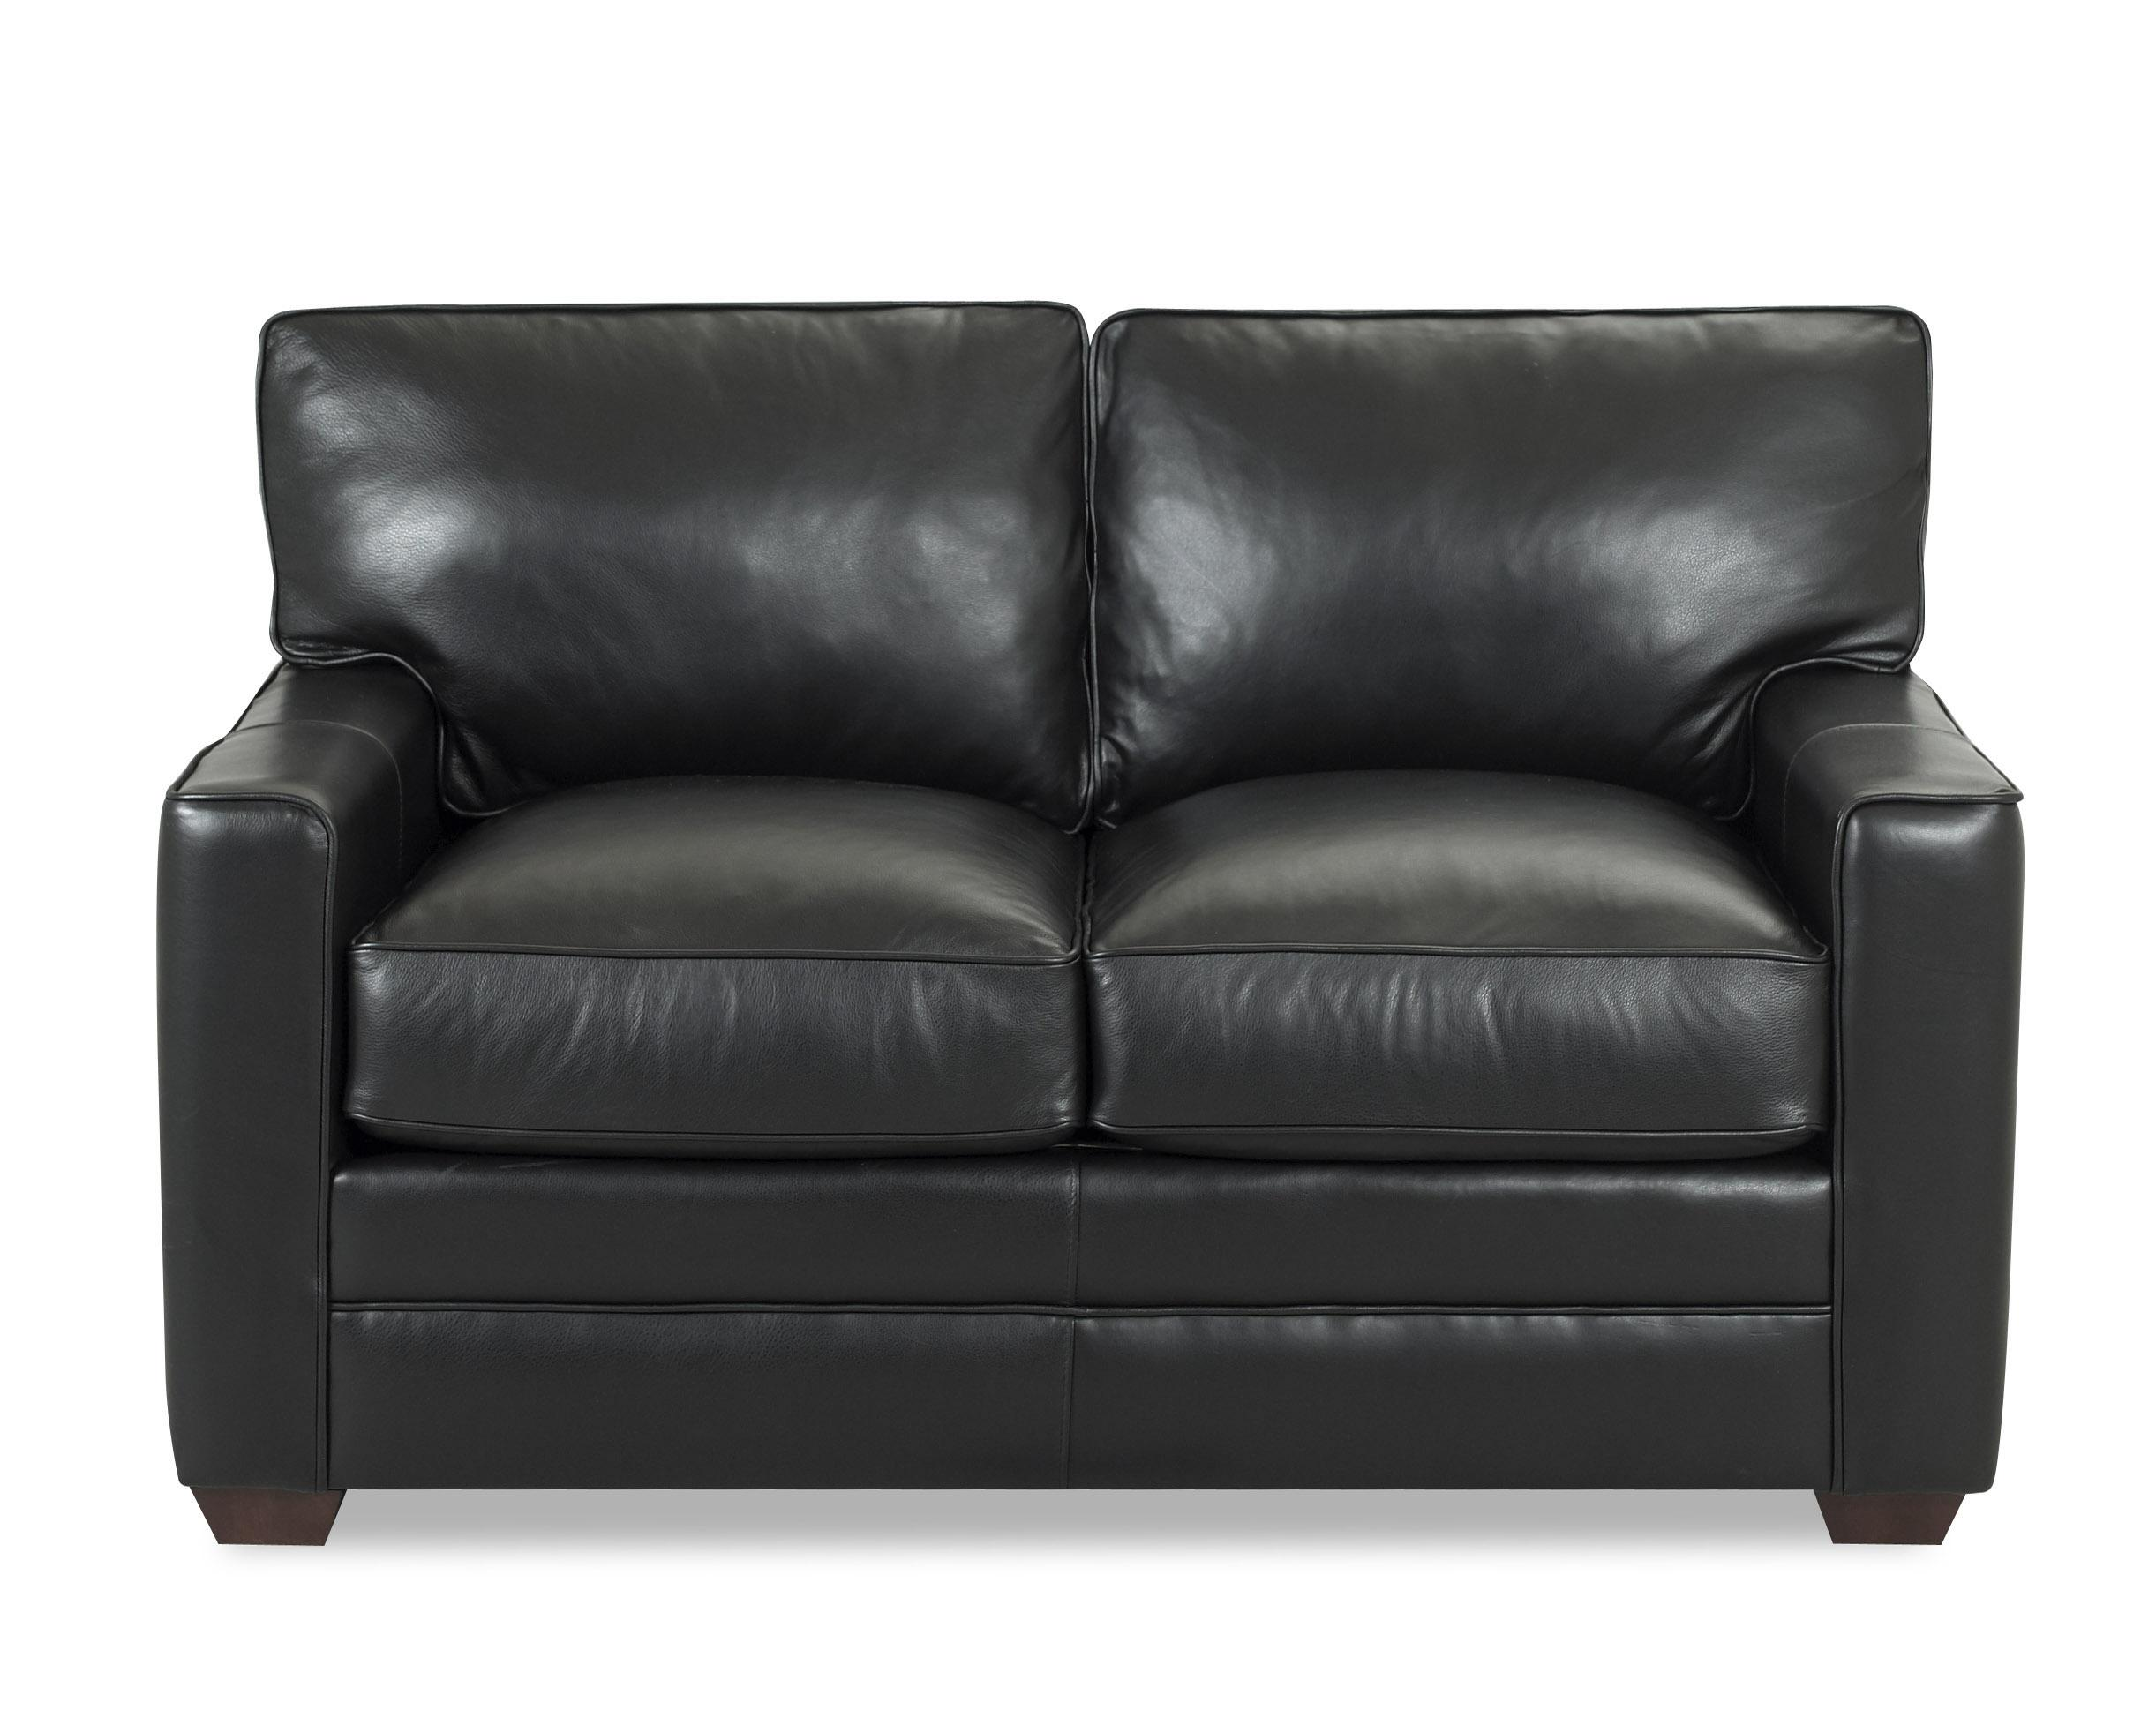 Pantego Loveseat by Klaussner at Northeast Factory Direct